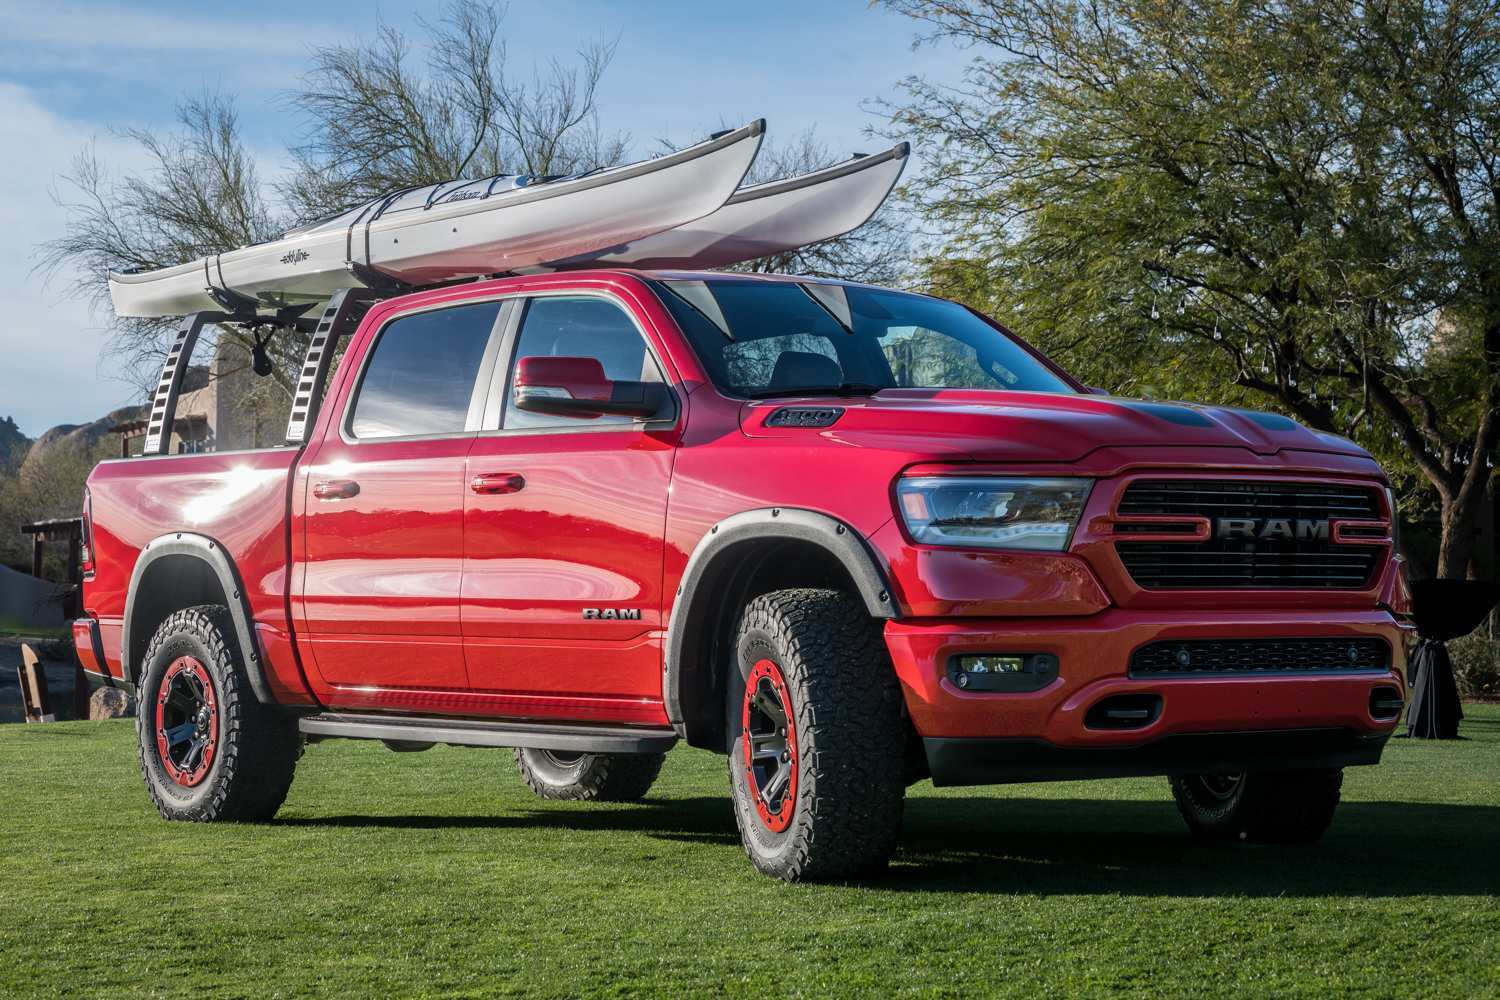 47 Great 2019 Dodge Half Ton Prices by 2019 Dodge Half Ton